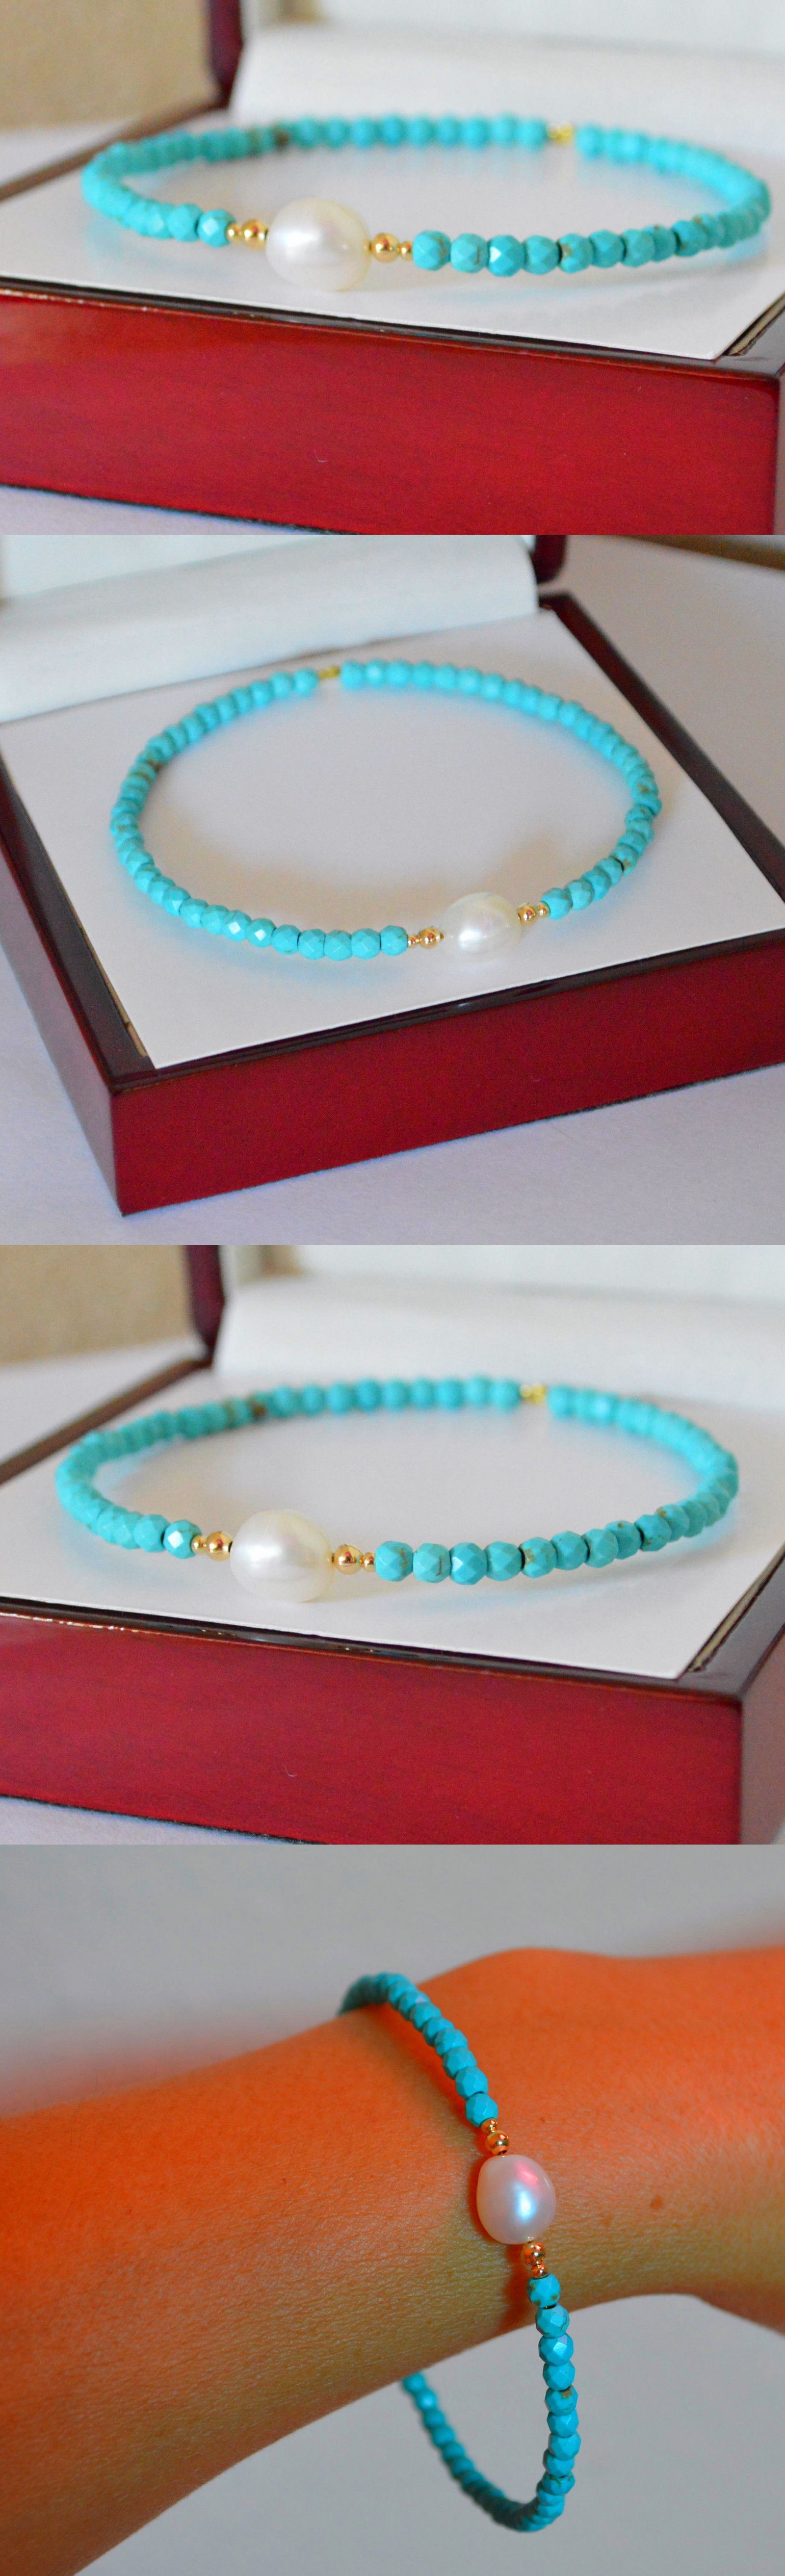 Gemstone 164315: Natural Blue Faceted Turquoise/Pearl Bangle Bracelet 14K Yellow Gold Handcrafted -> BUY IT NOW ONLY: $97.9 on eBay!